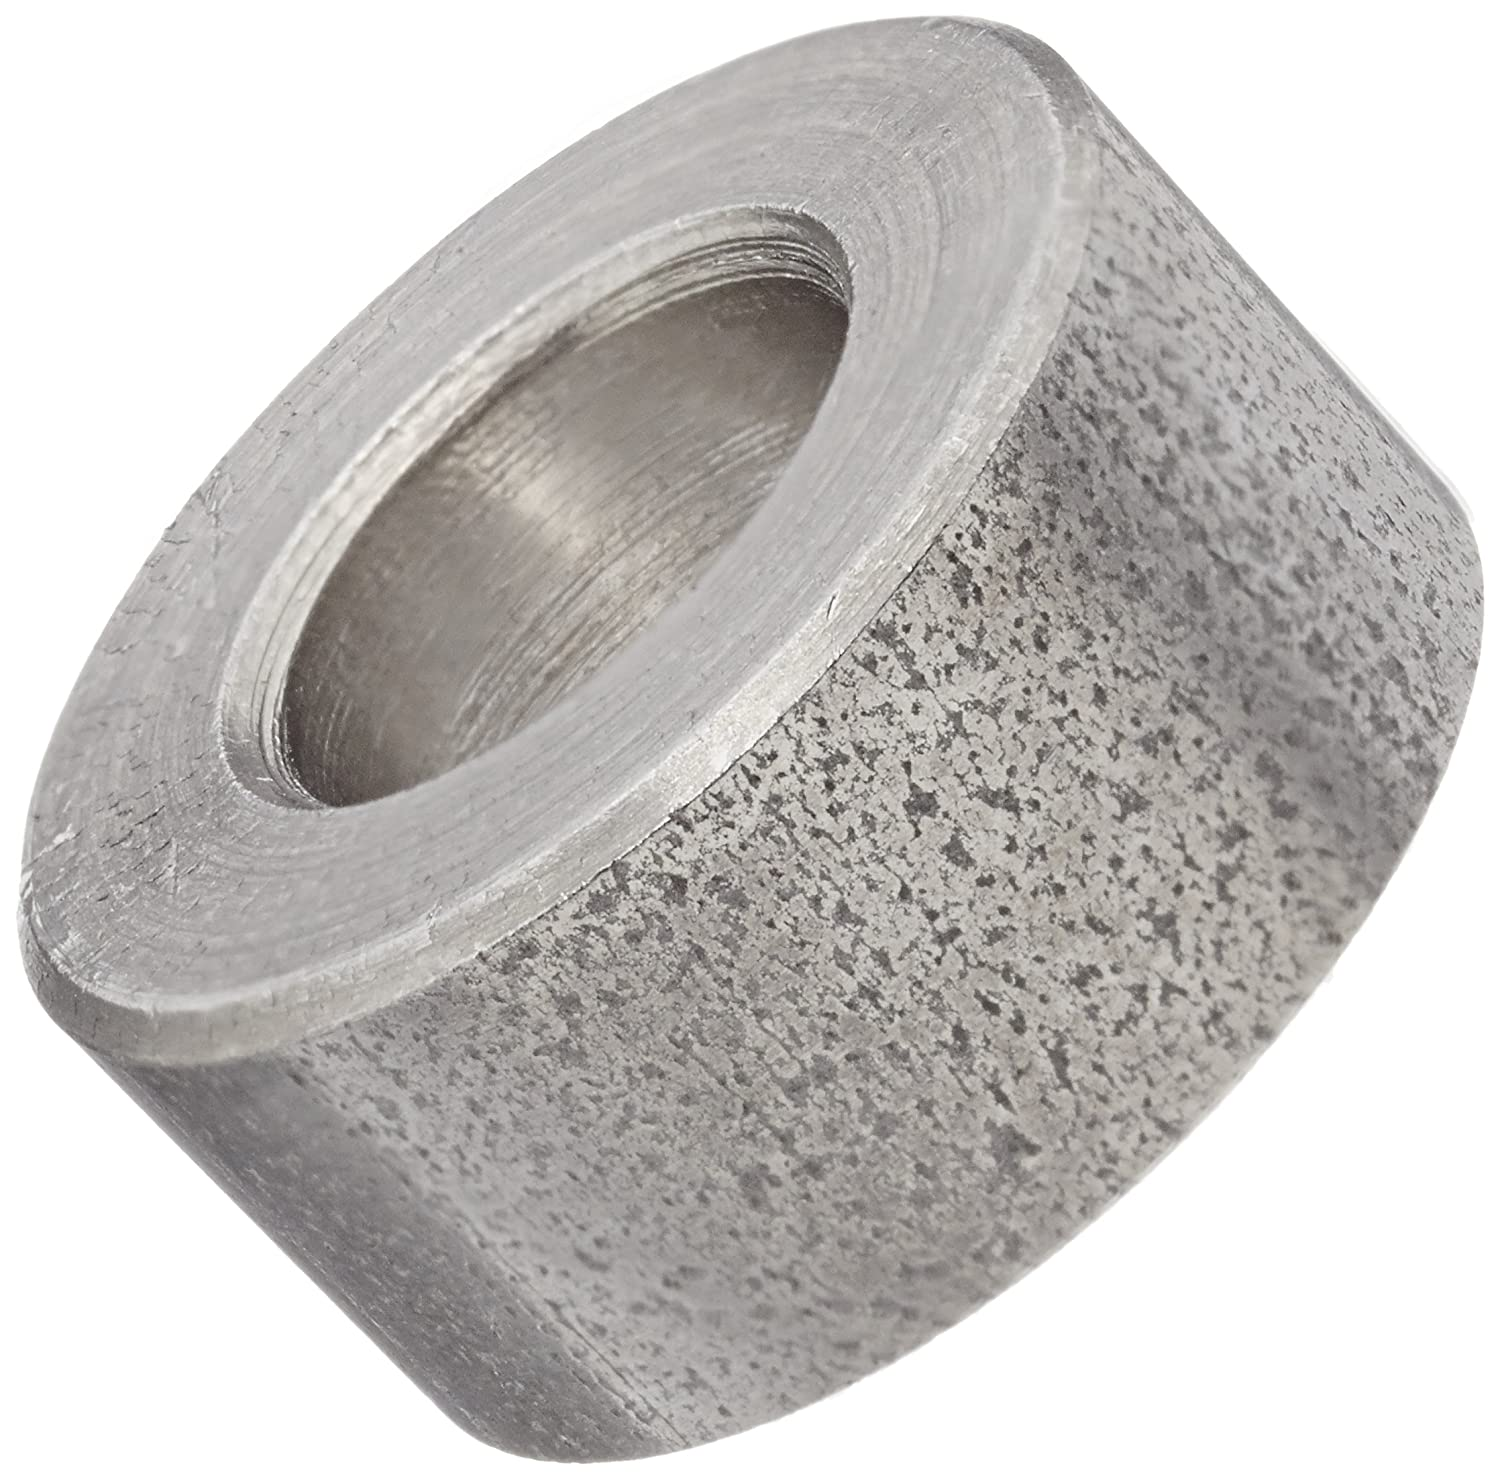 Made in US Plain Finish 18-8 Stainless Steel 3//4 OD Round Spacer 5//16 Screw Size 5//8 Length 0.315 ID